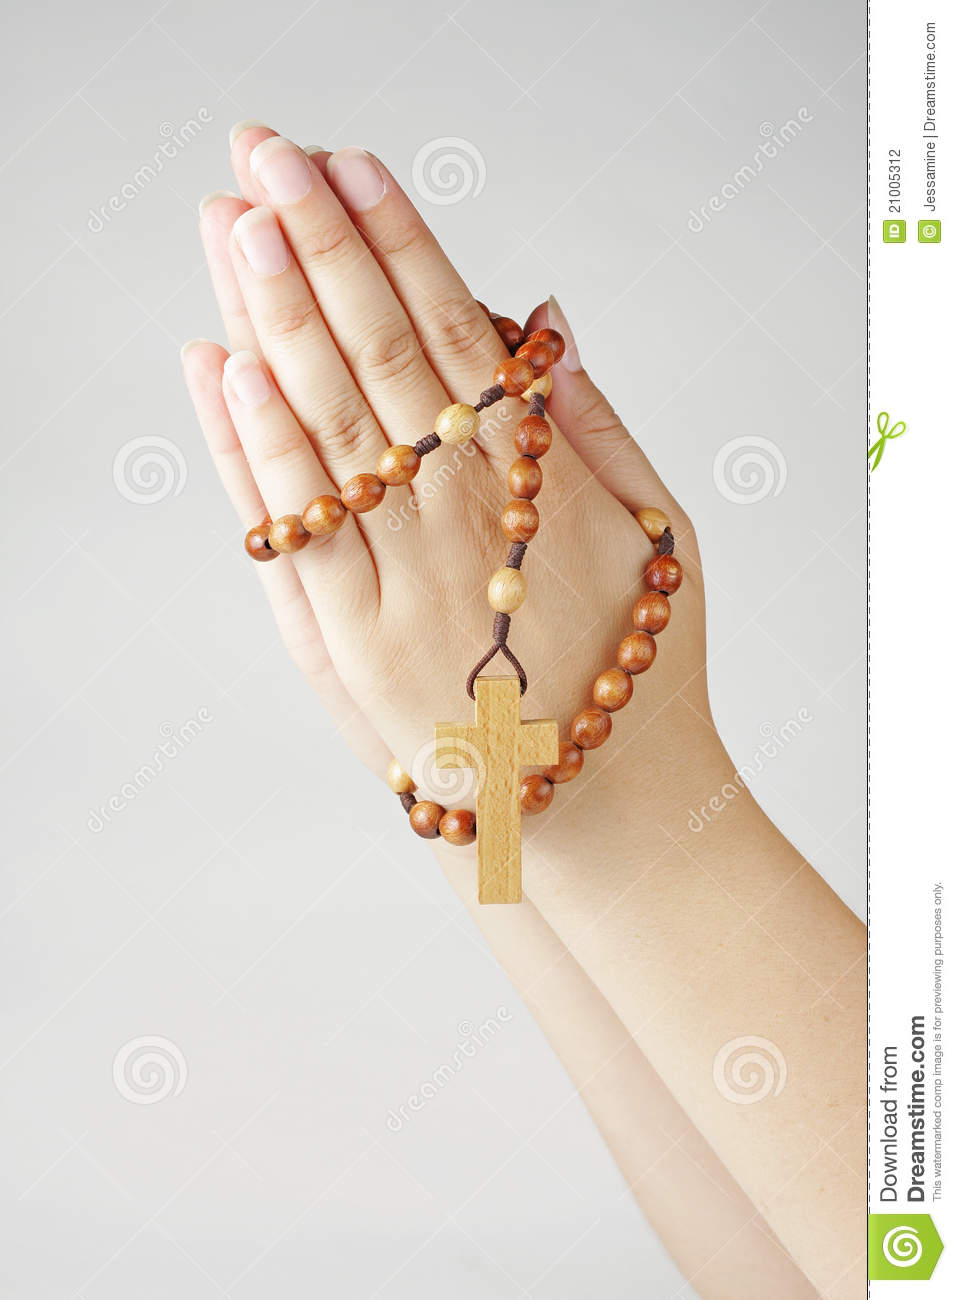 Hands In Prayer With A Rosary Stock Photography - Image: 21005312